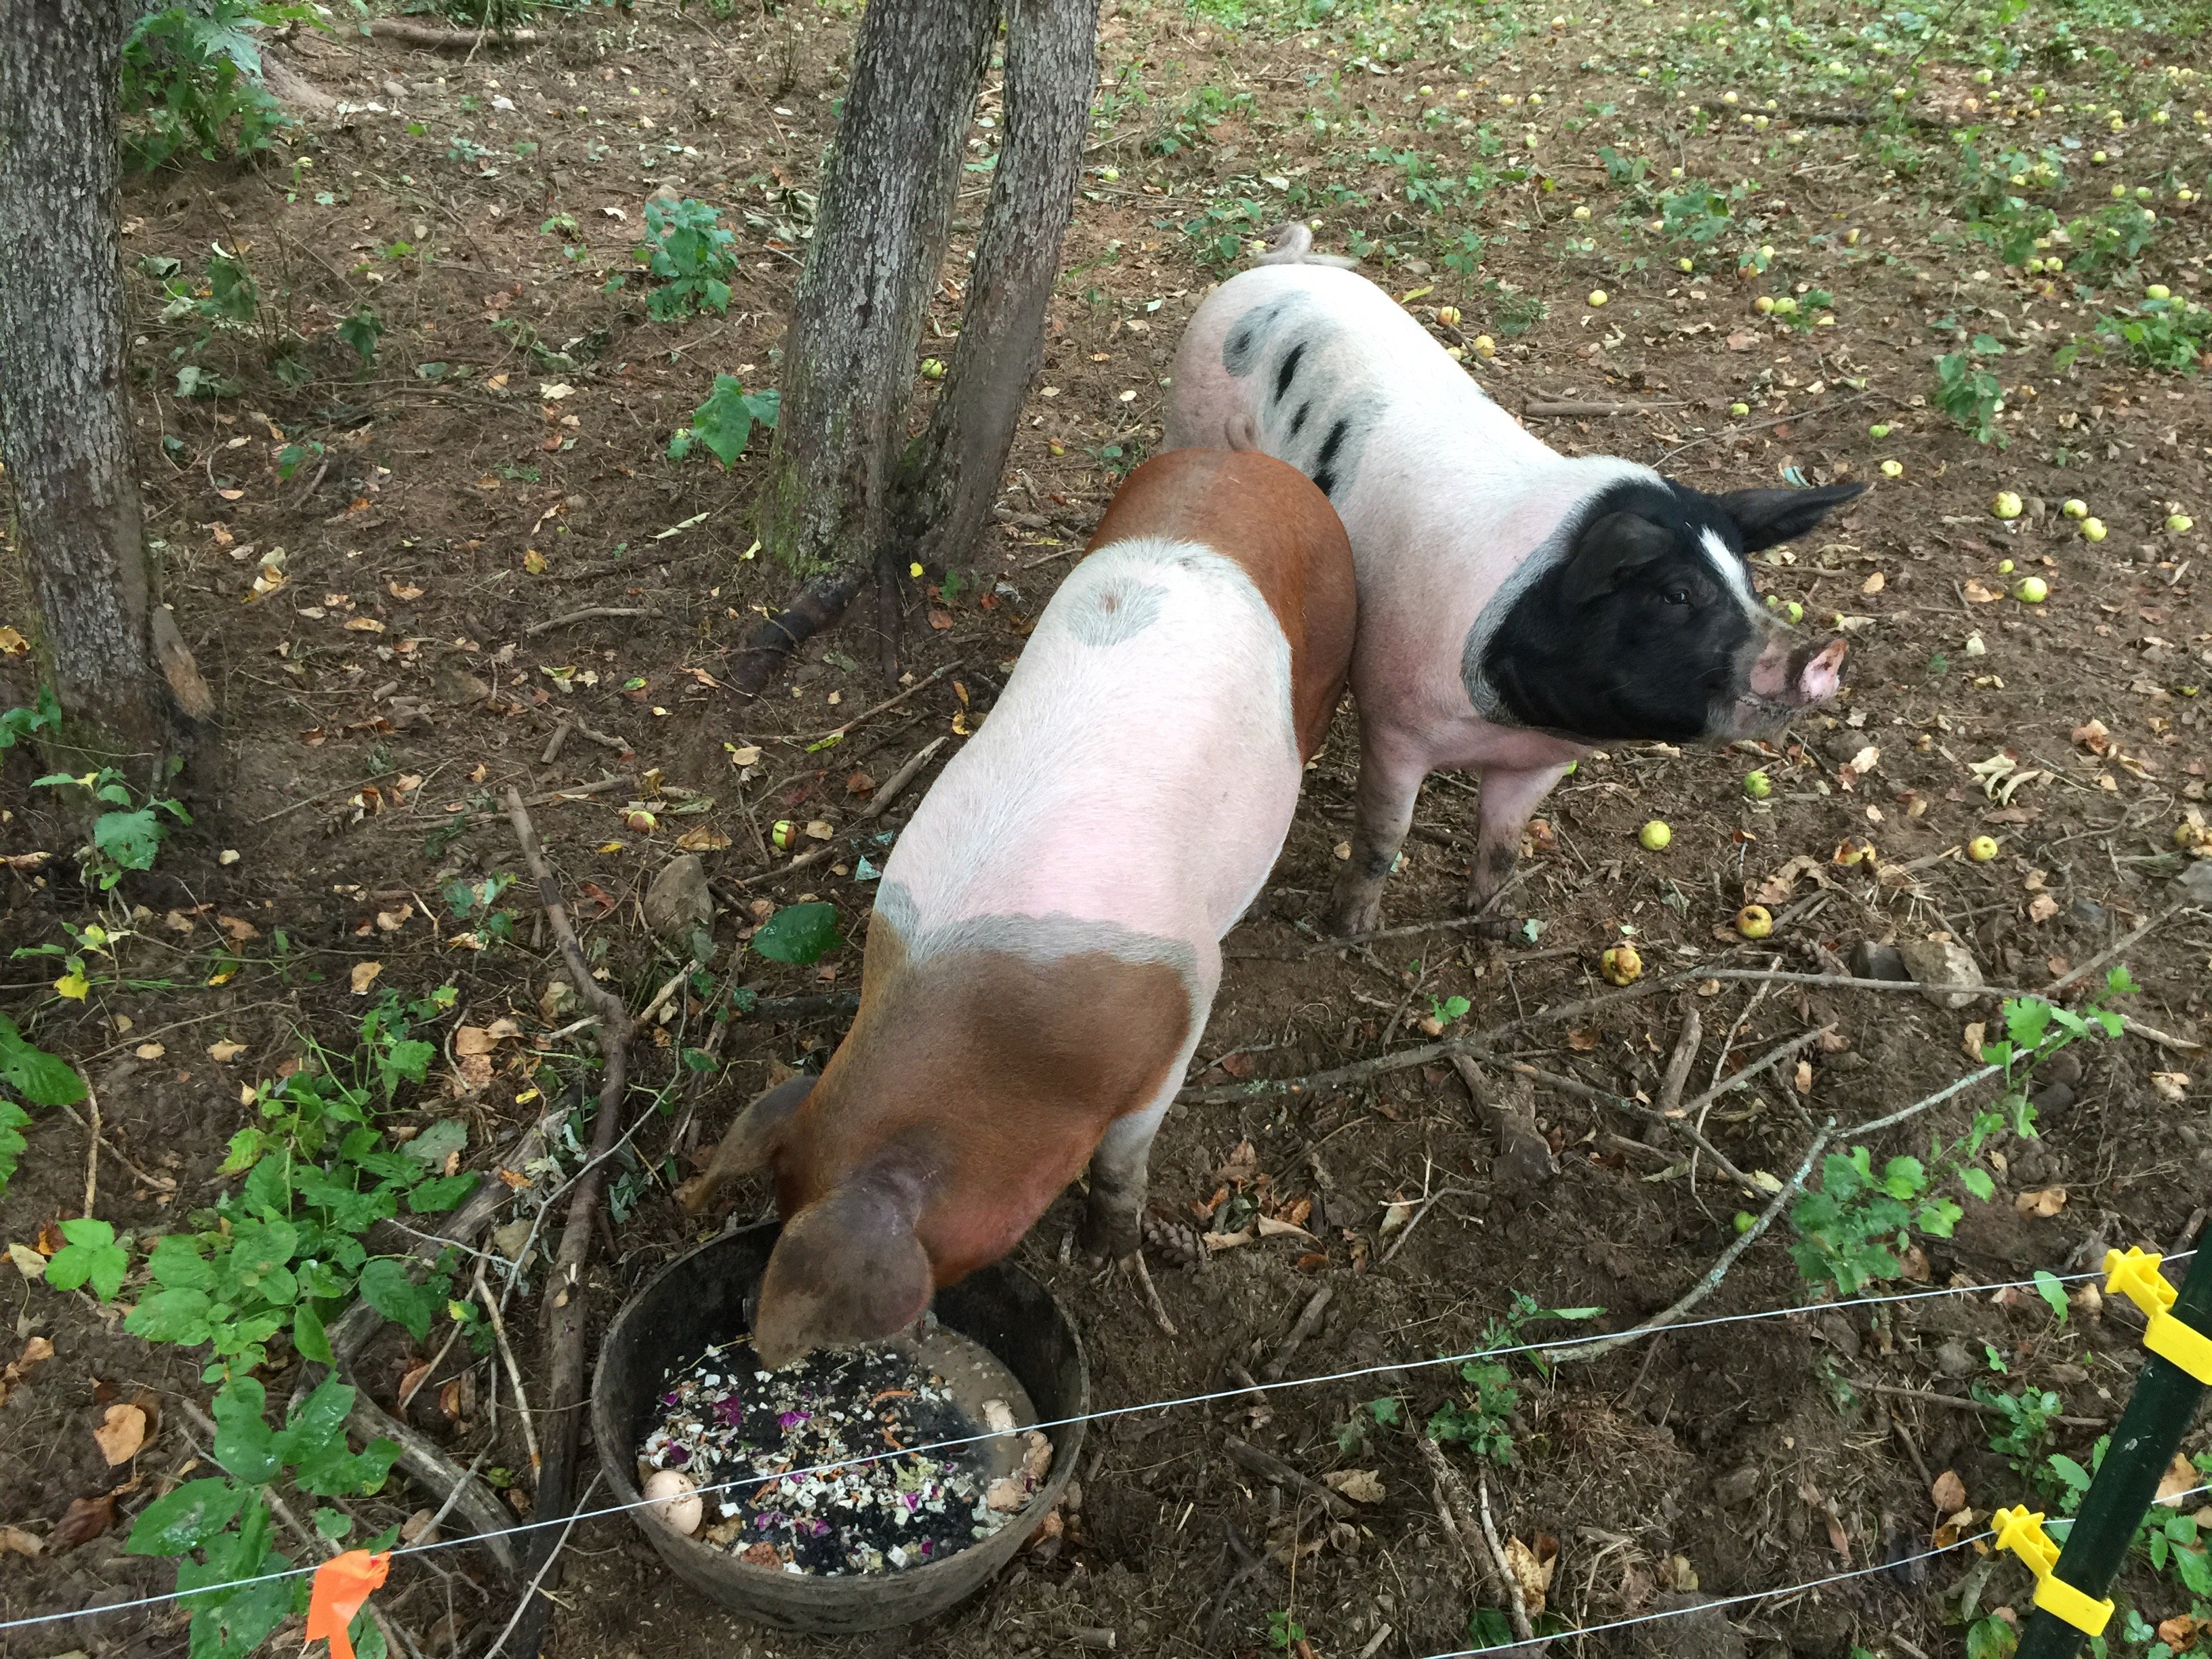 Pig Harvesting & Why we Raise our Own Pigs For Pasture Raised Bacon and so much more